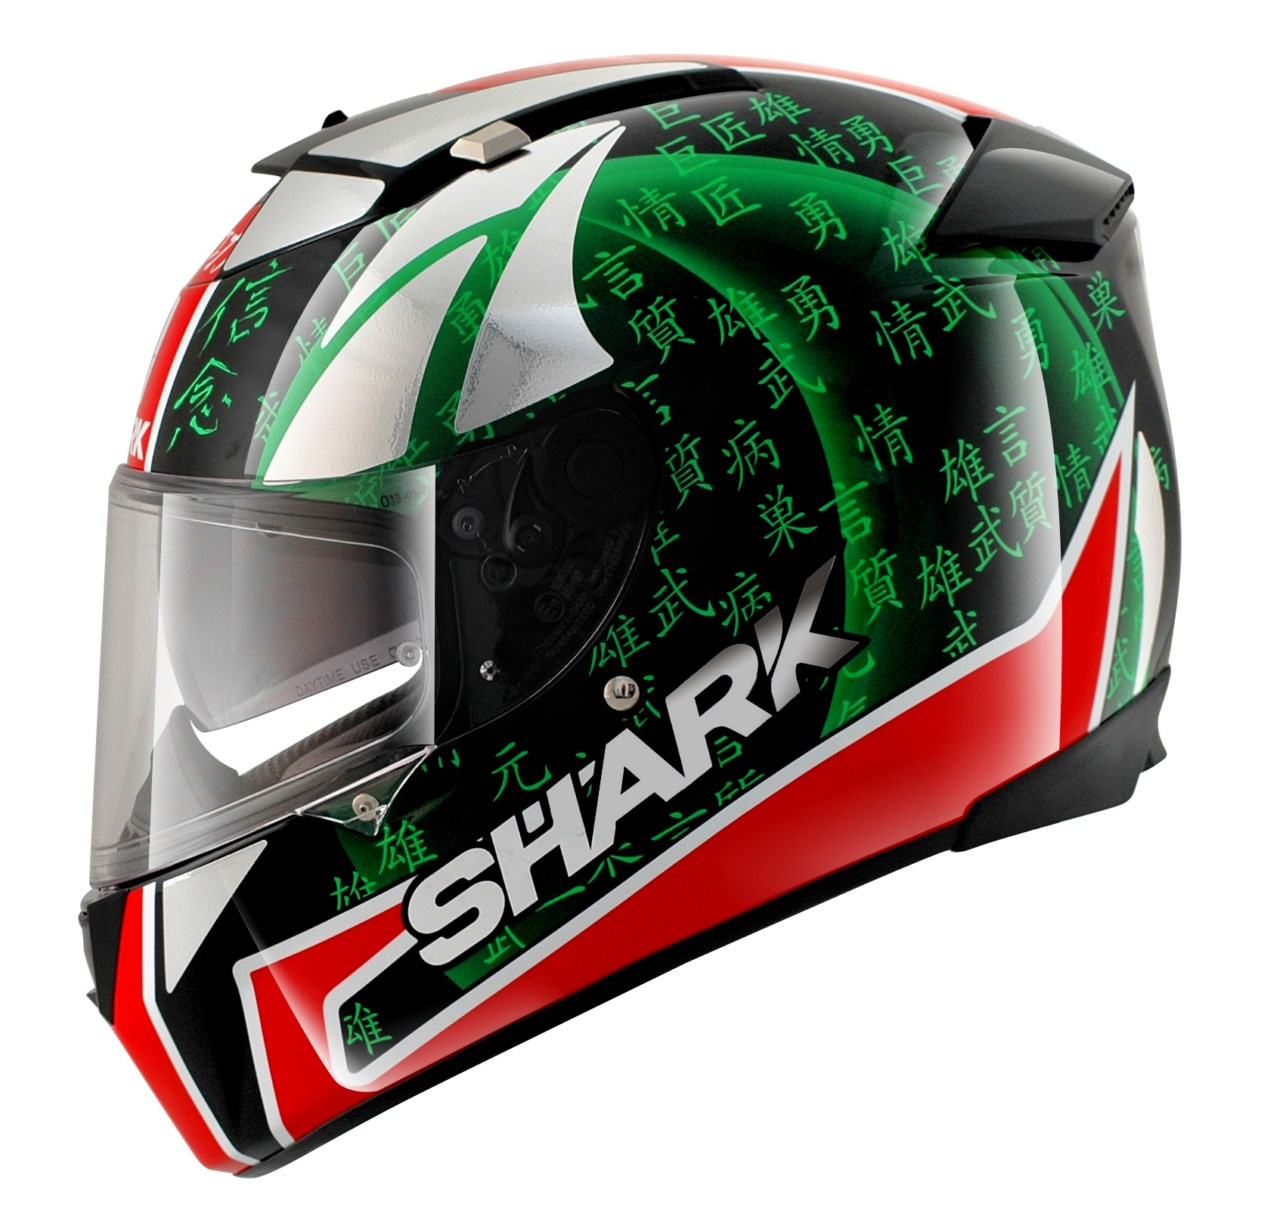 SHARK-Speed-R-Tom-Sykes-Edition.jpg